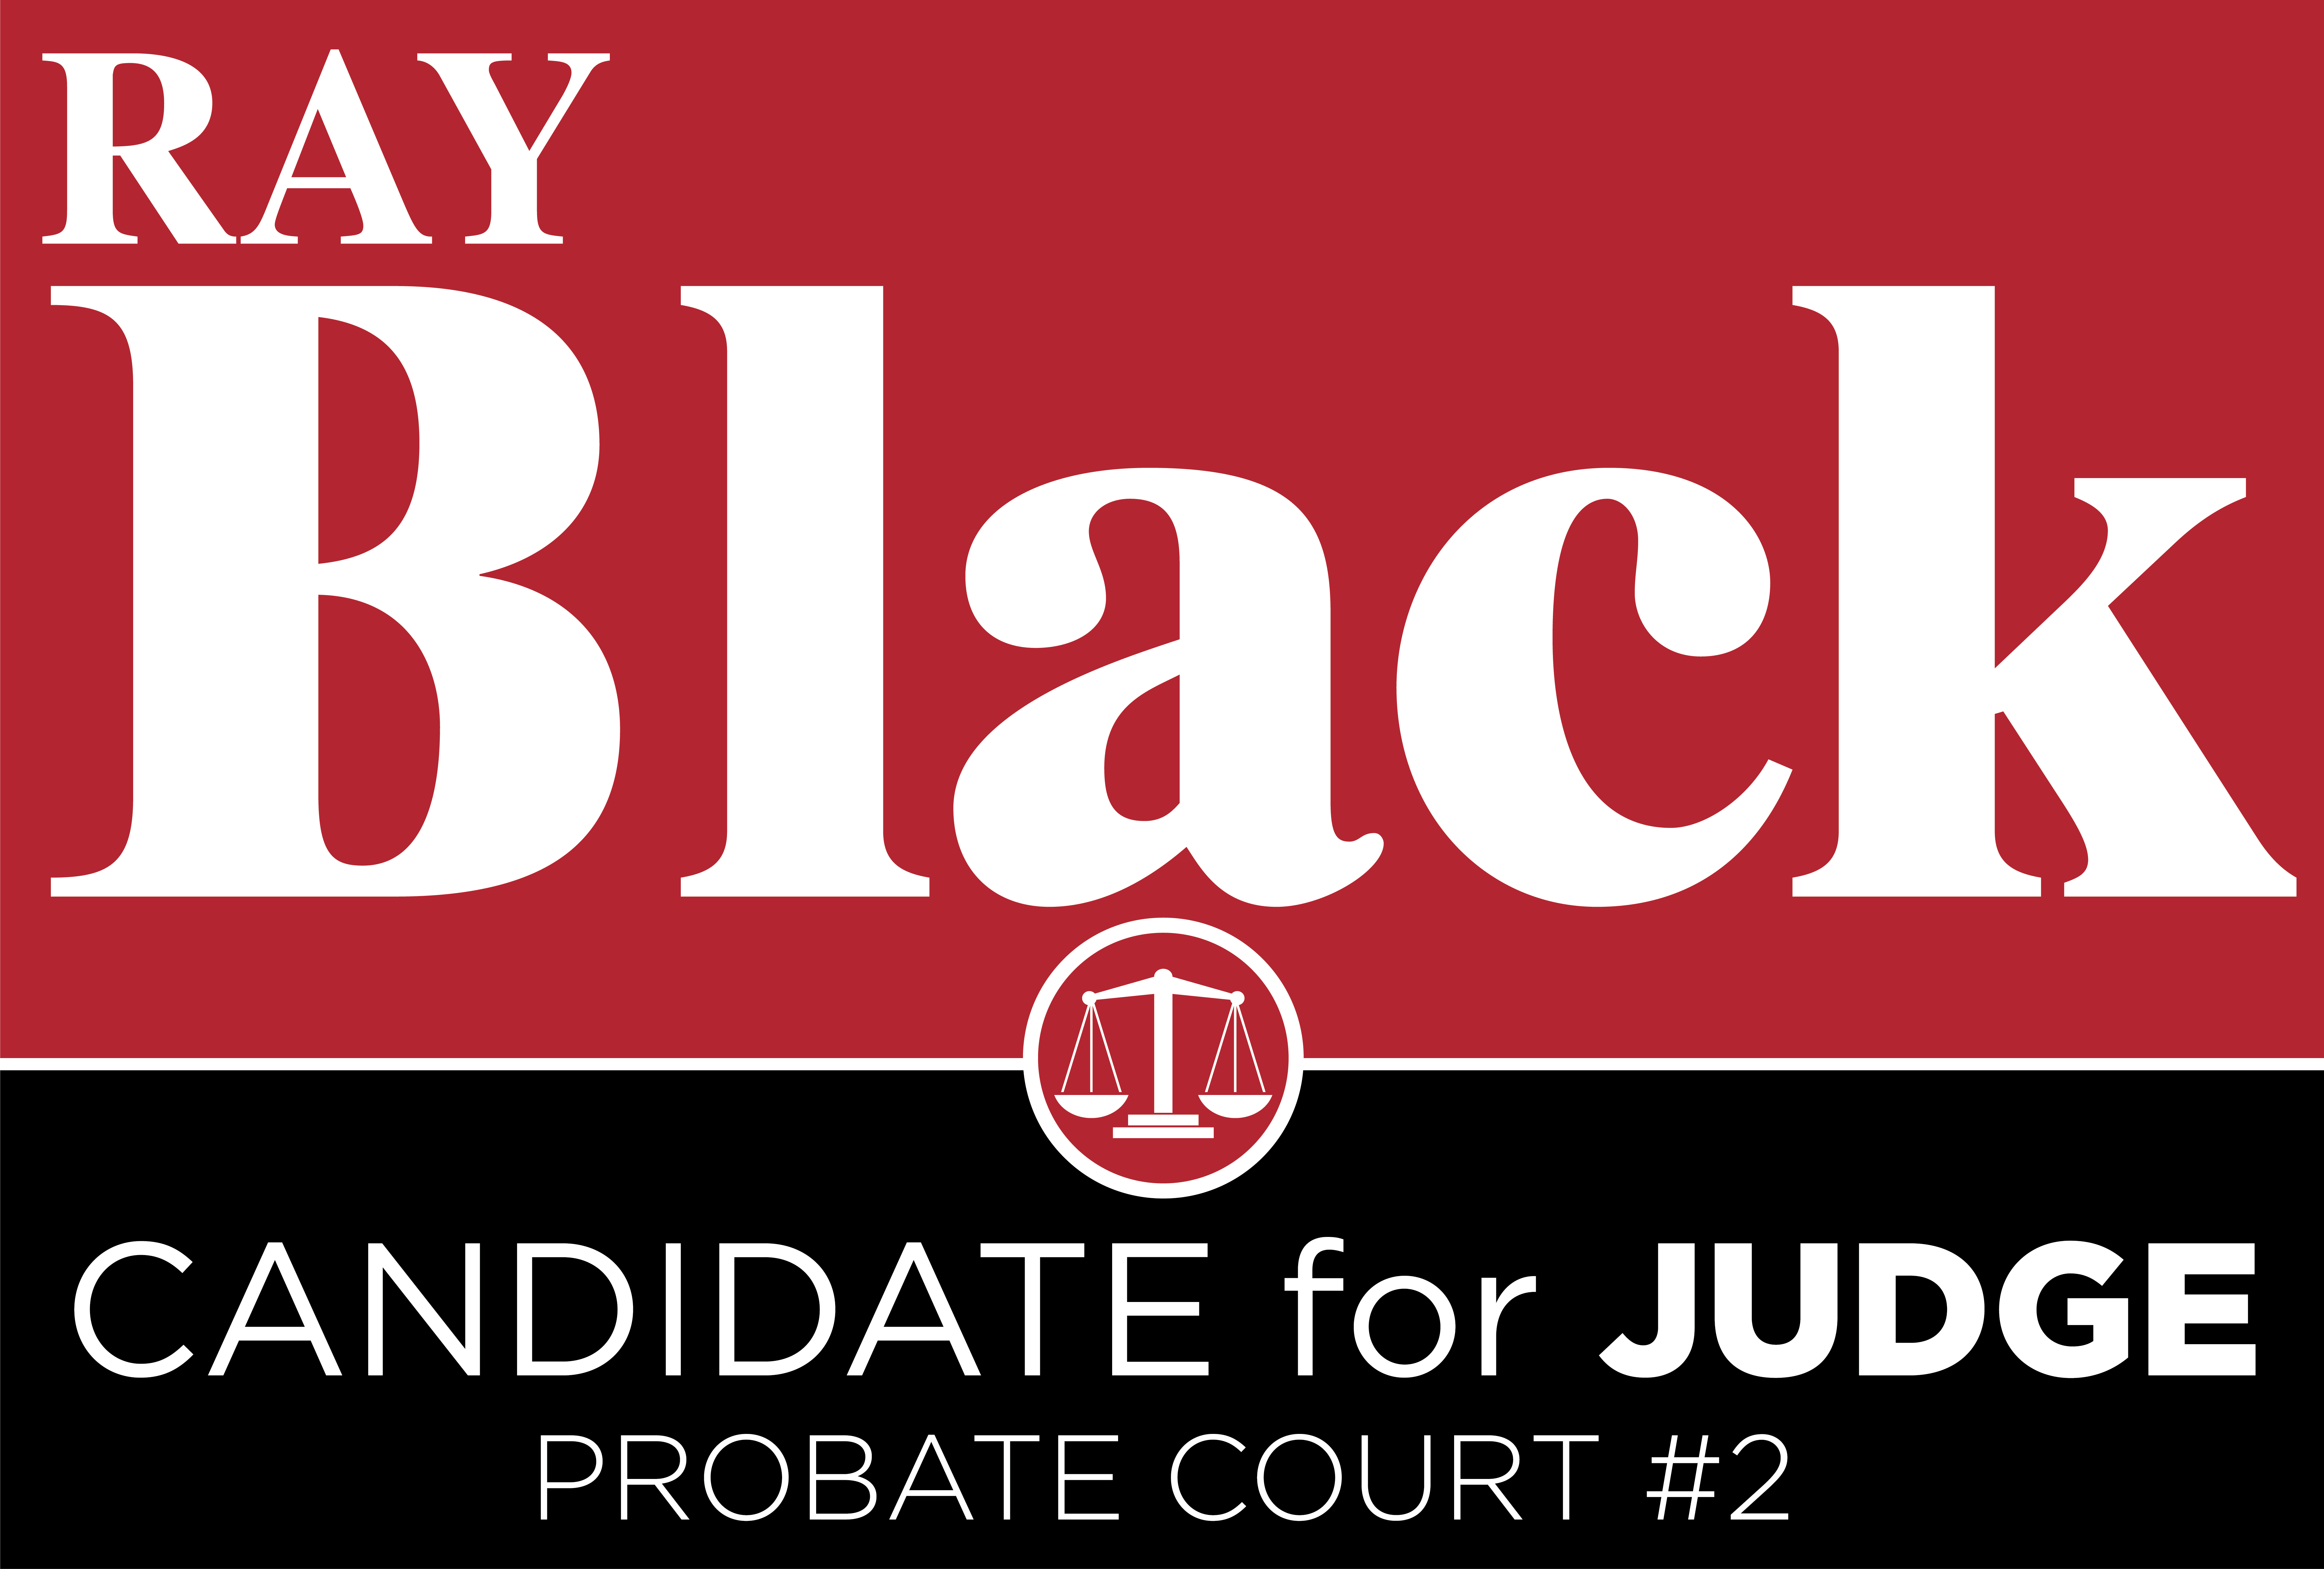 About Ray Black For Judge